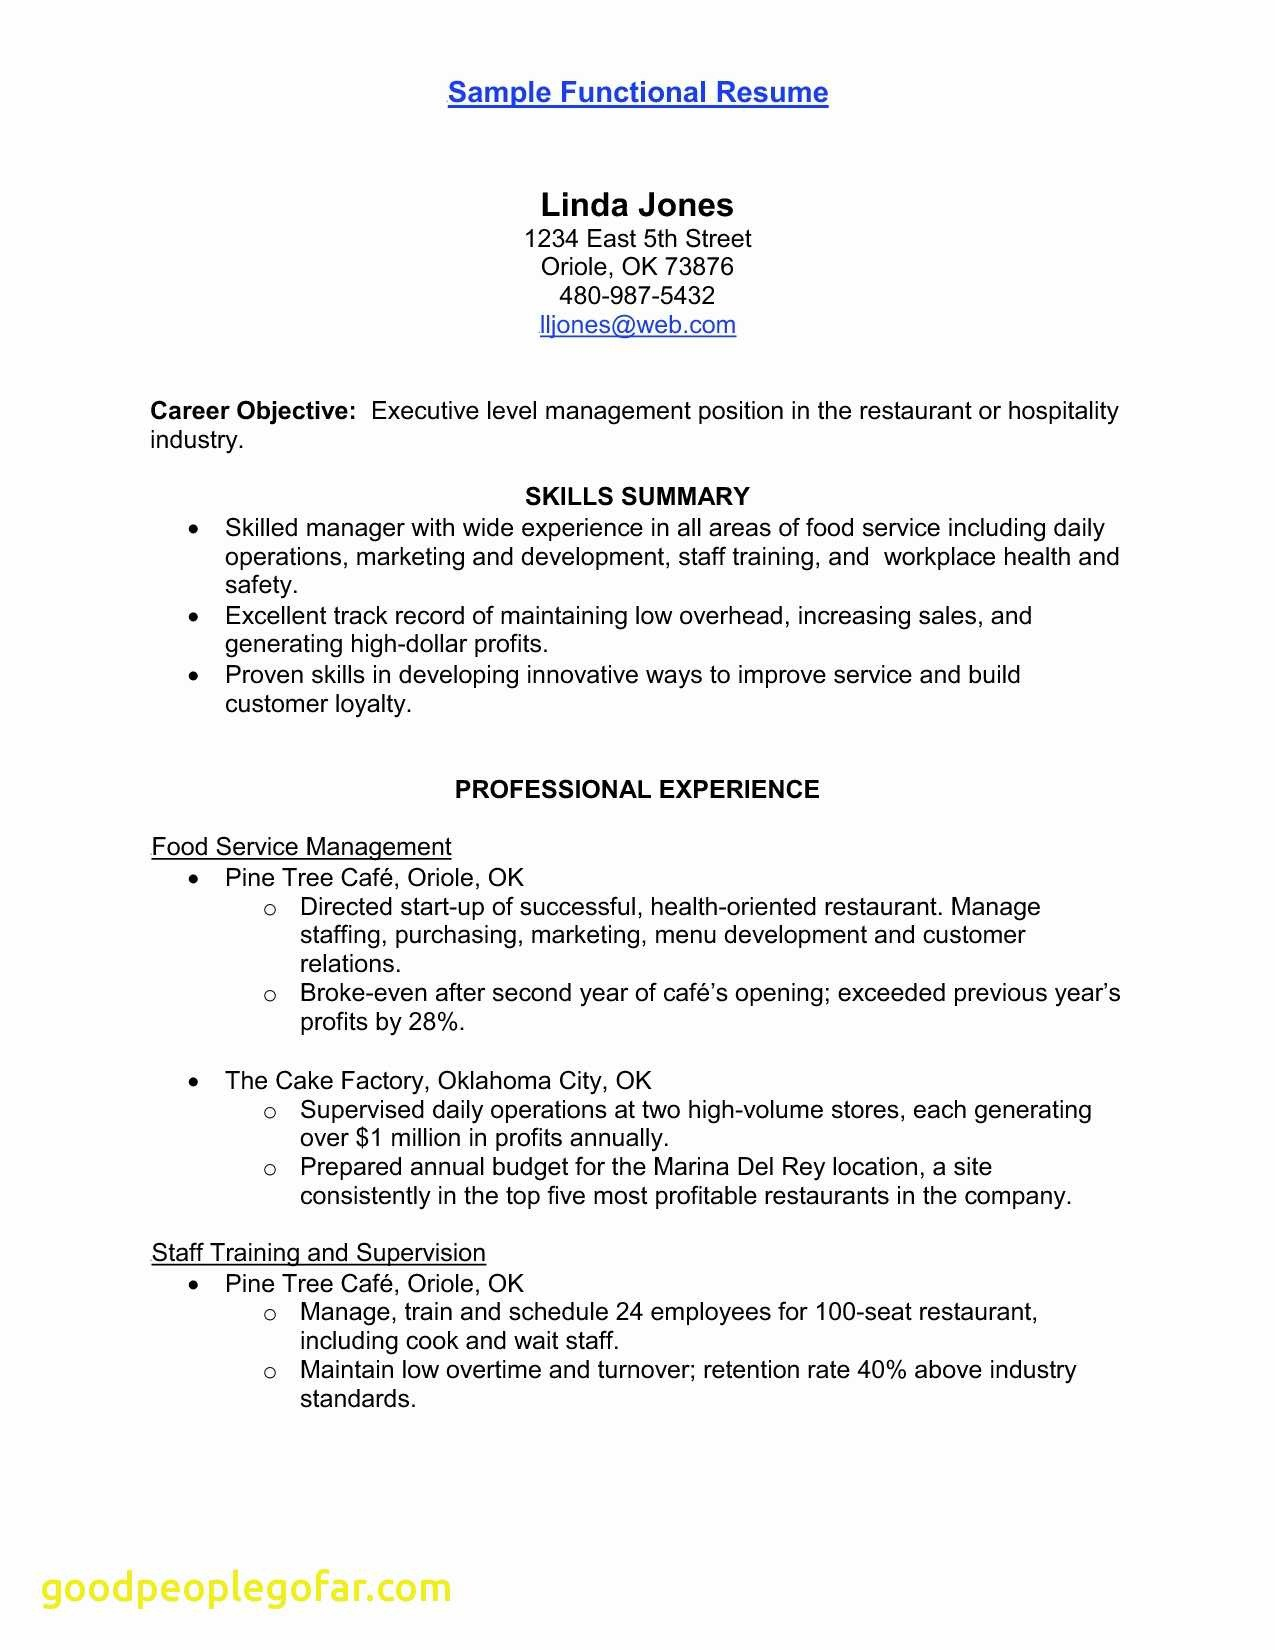 technician resume Collection-Tech Resume Templates Inspirational Obama Resume 0d Aurelianmg Information 4-d